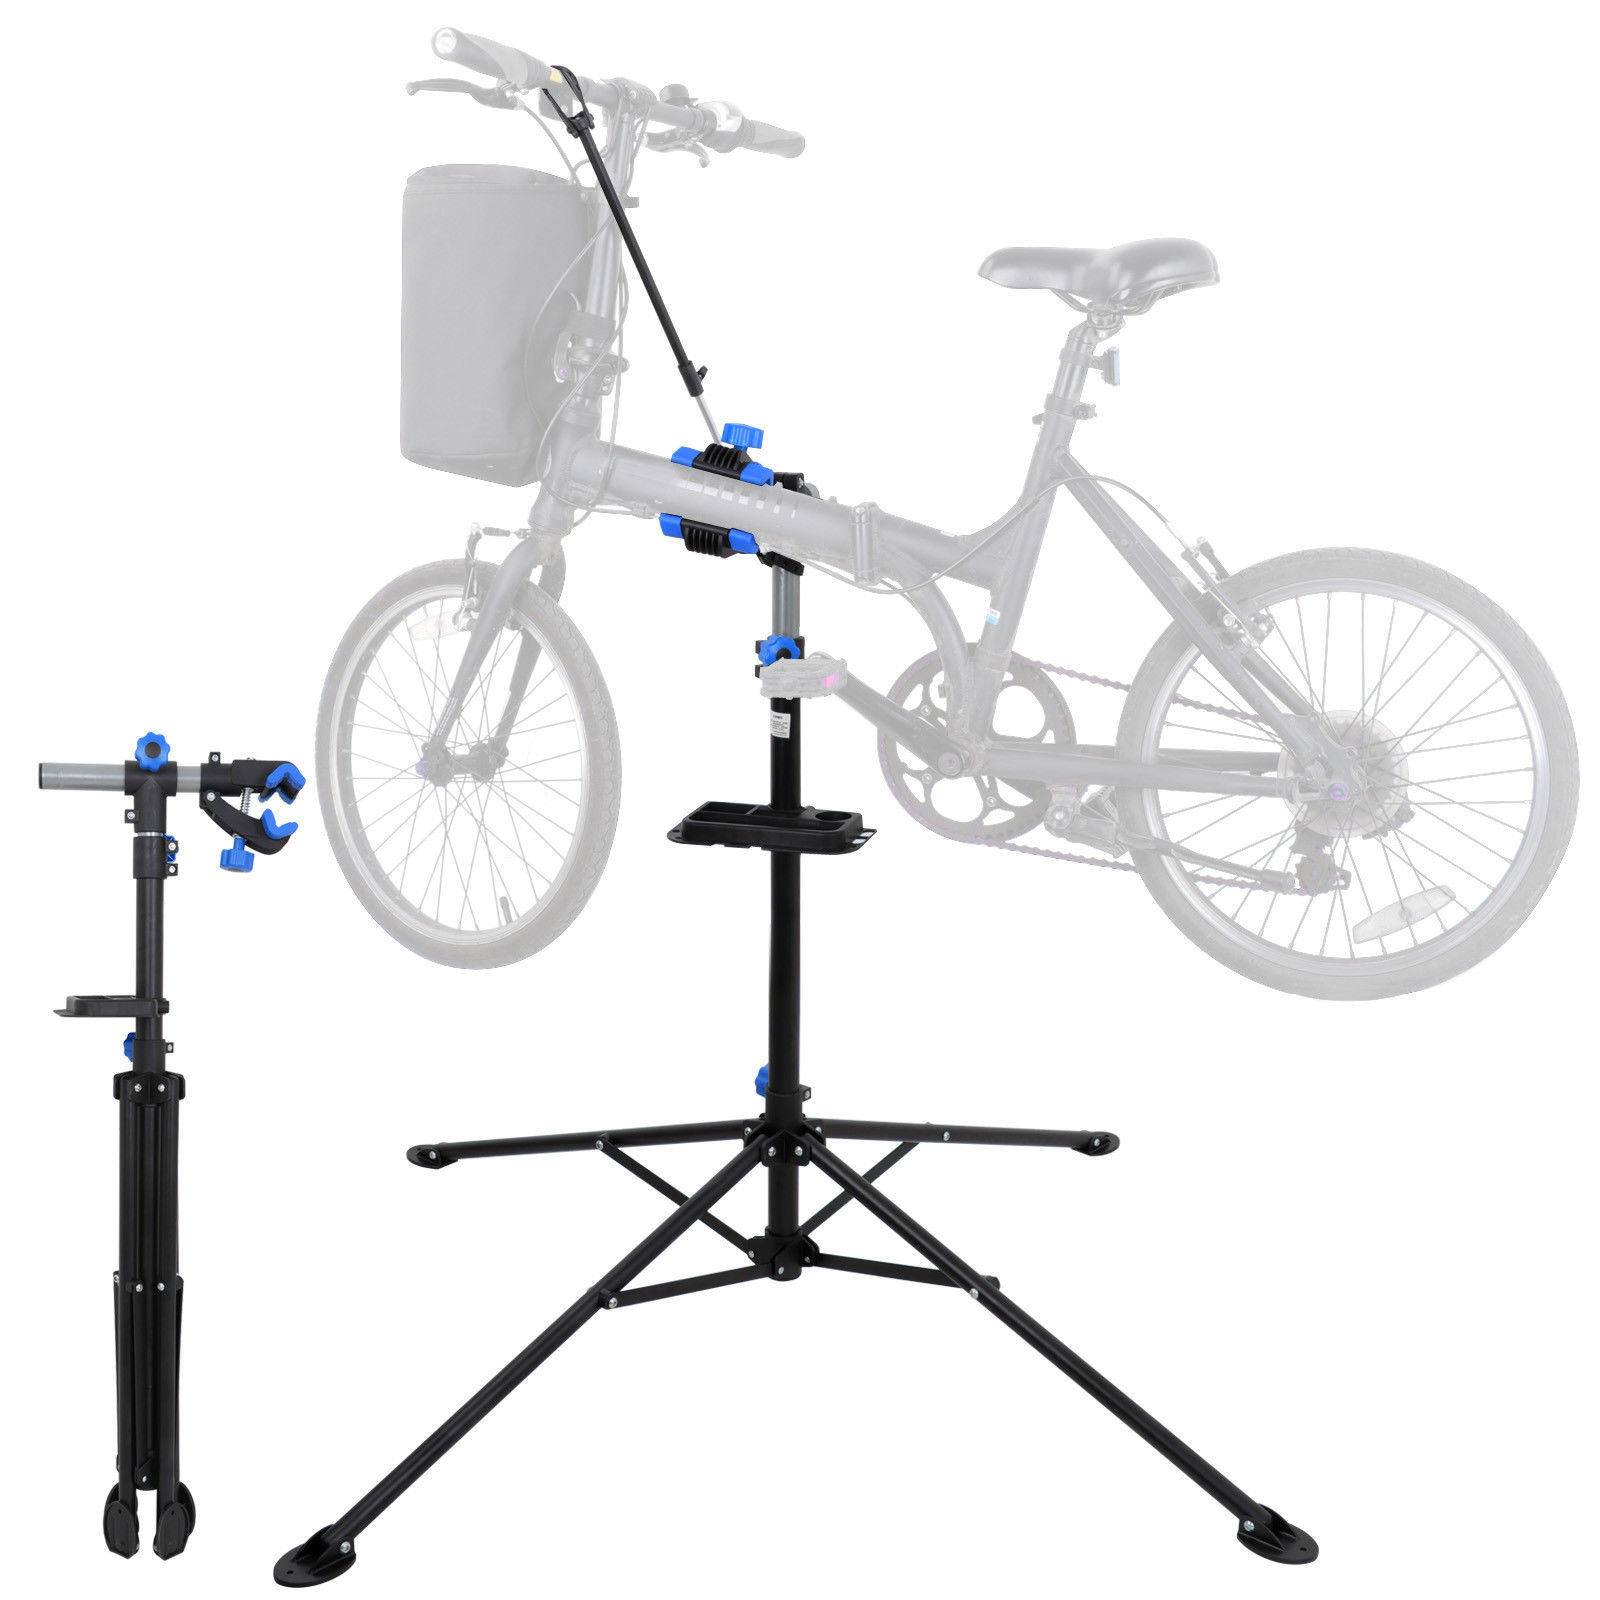 zeny pro mechanic bike repair stand 360 degree rotate adjustable Club Car Wiper Switch zeny pro mechanic bike repair stand 360 degree rotate adjustable height bicycle maintenance rack workstand with tool tray telescopic arm cycle walmart